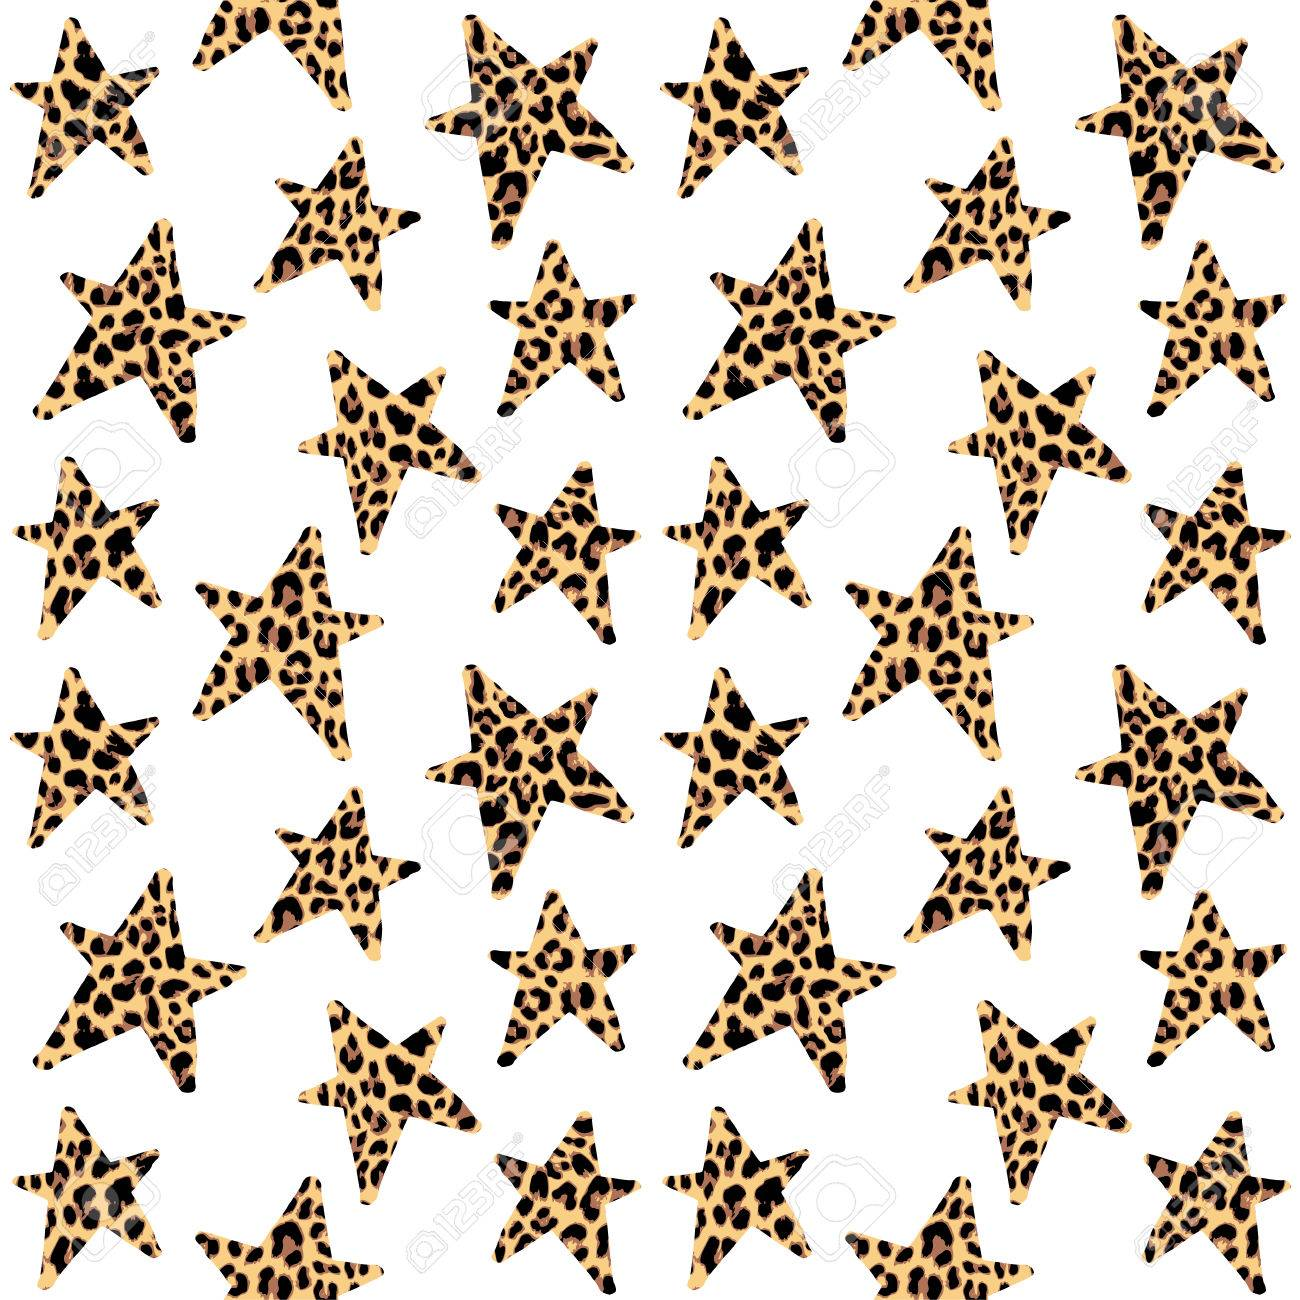 Seamless pattern with leopard stars, trendy rock or punk design, vector illustration background - 48707131